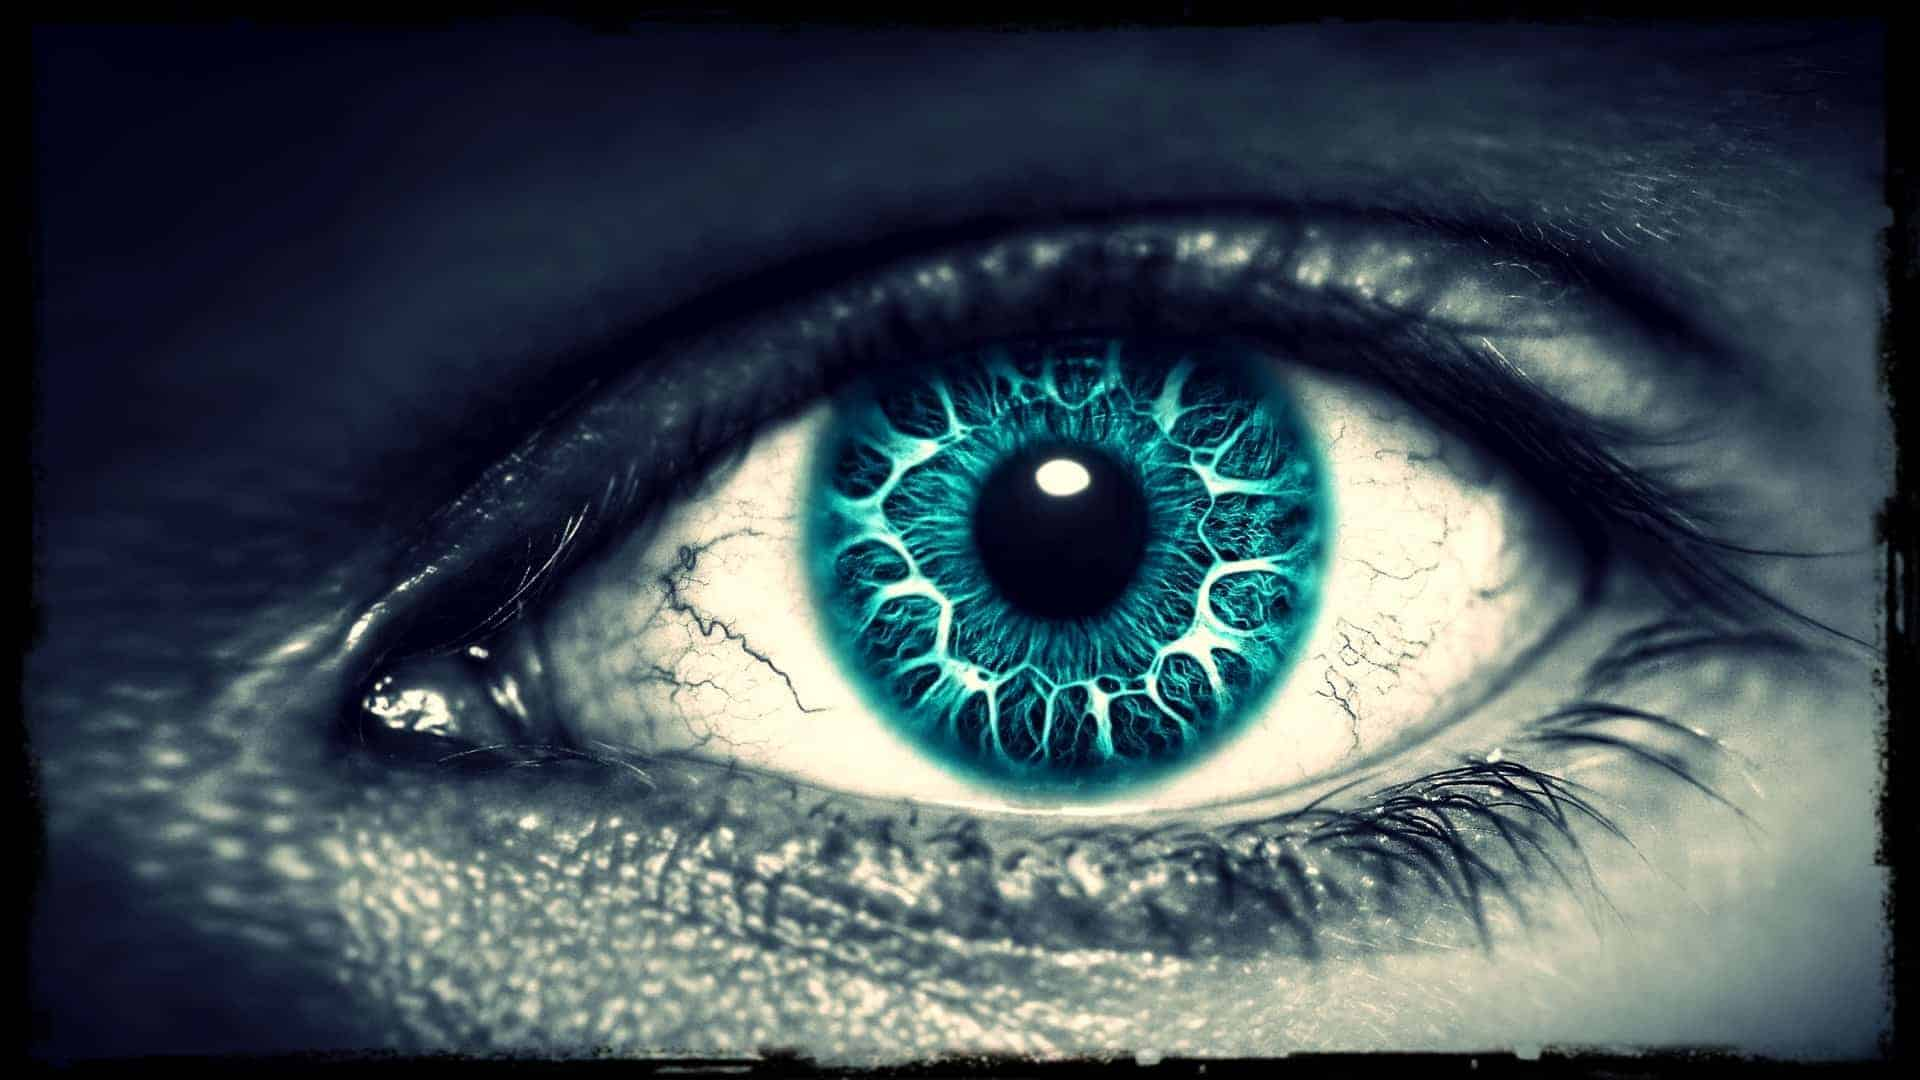 A close-up of a human eye is shown. There is a surreal color to it. The iris is vibrant.